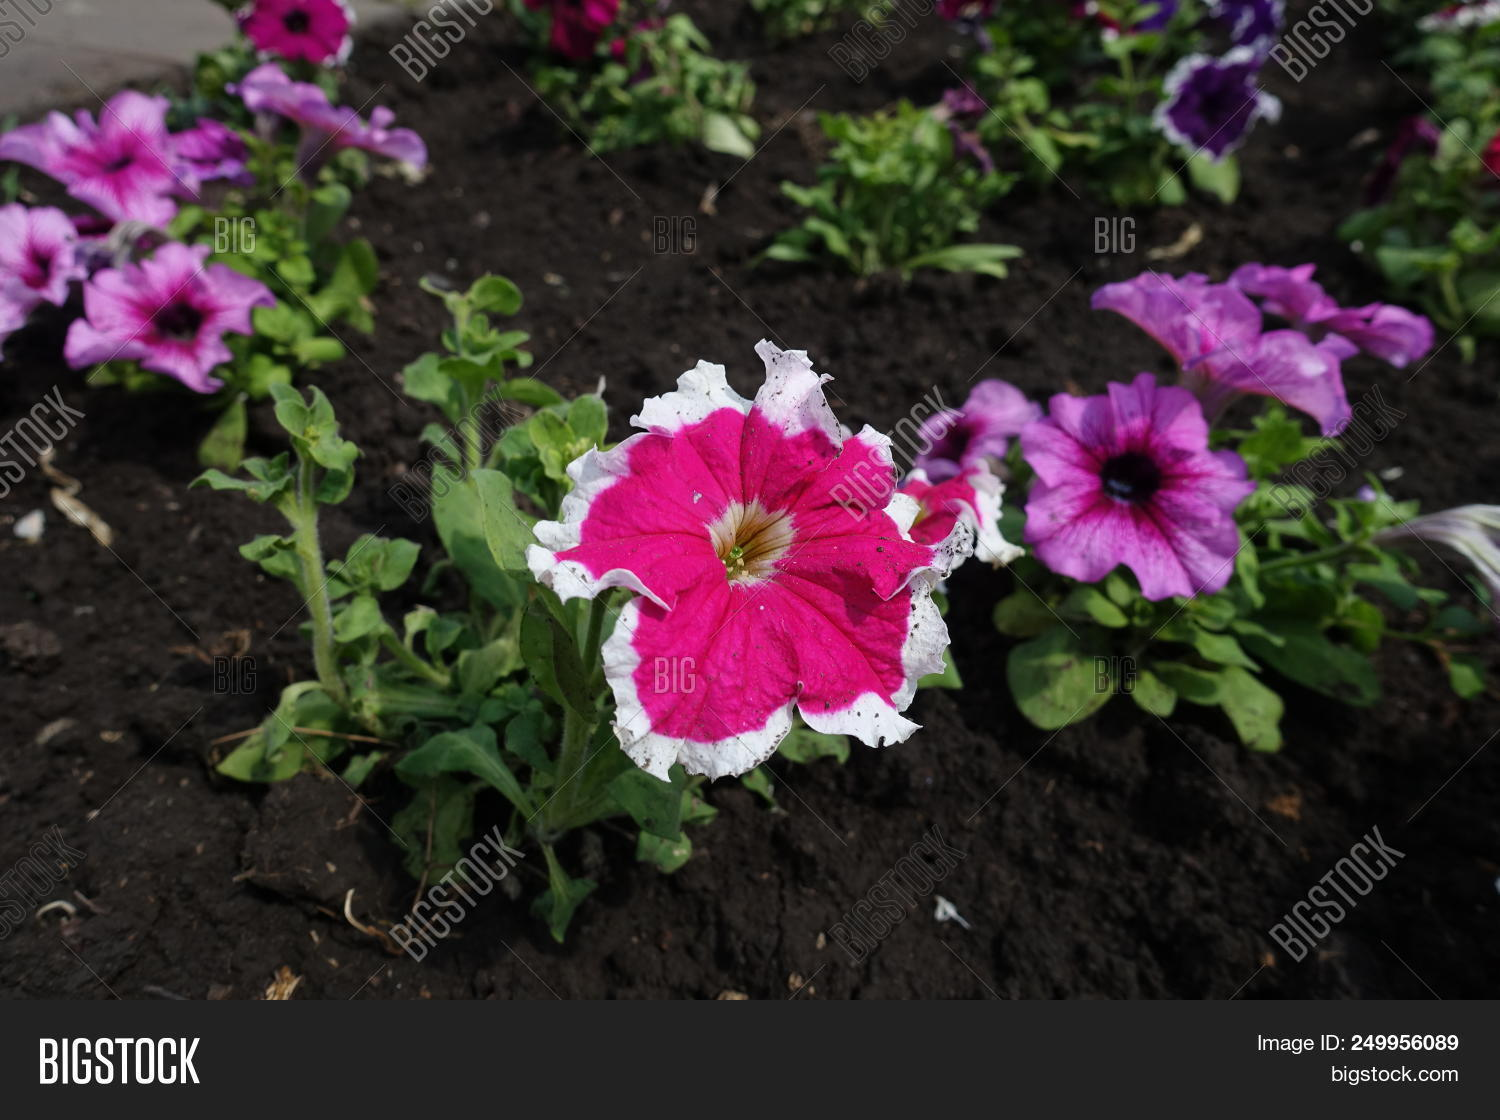 Cerise Colored Flowers Image Photo Free Trial Bigstock